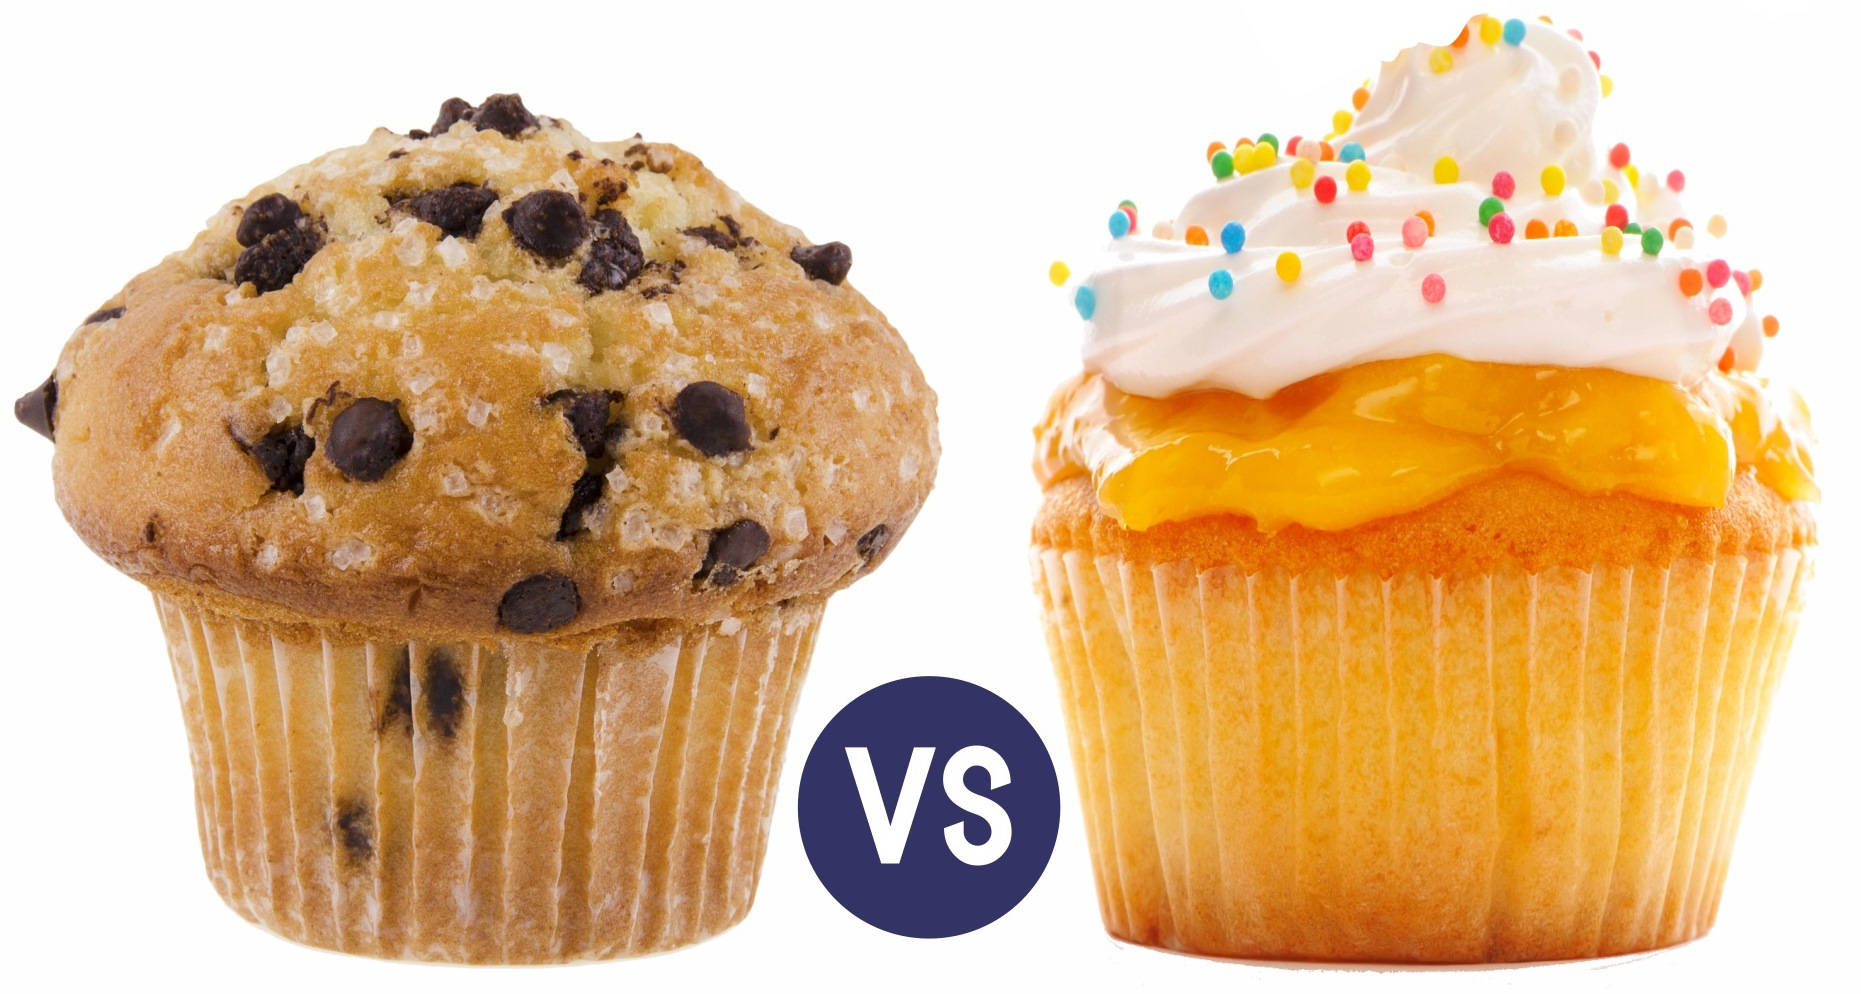 TS: On Muffins And Cupcakes